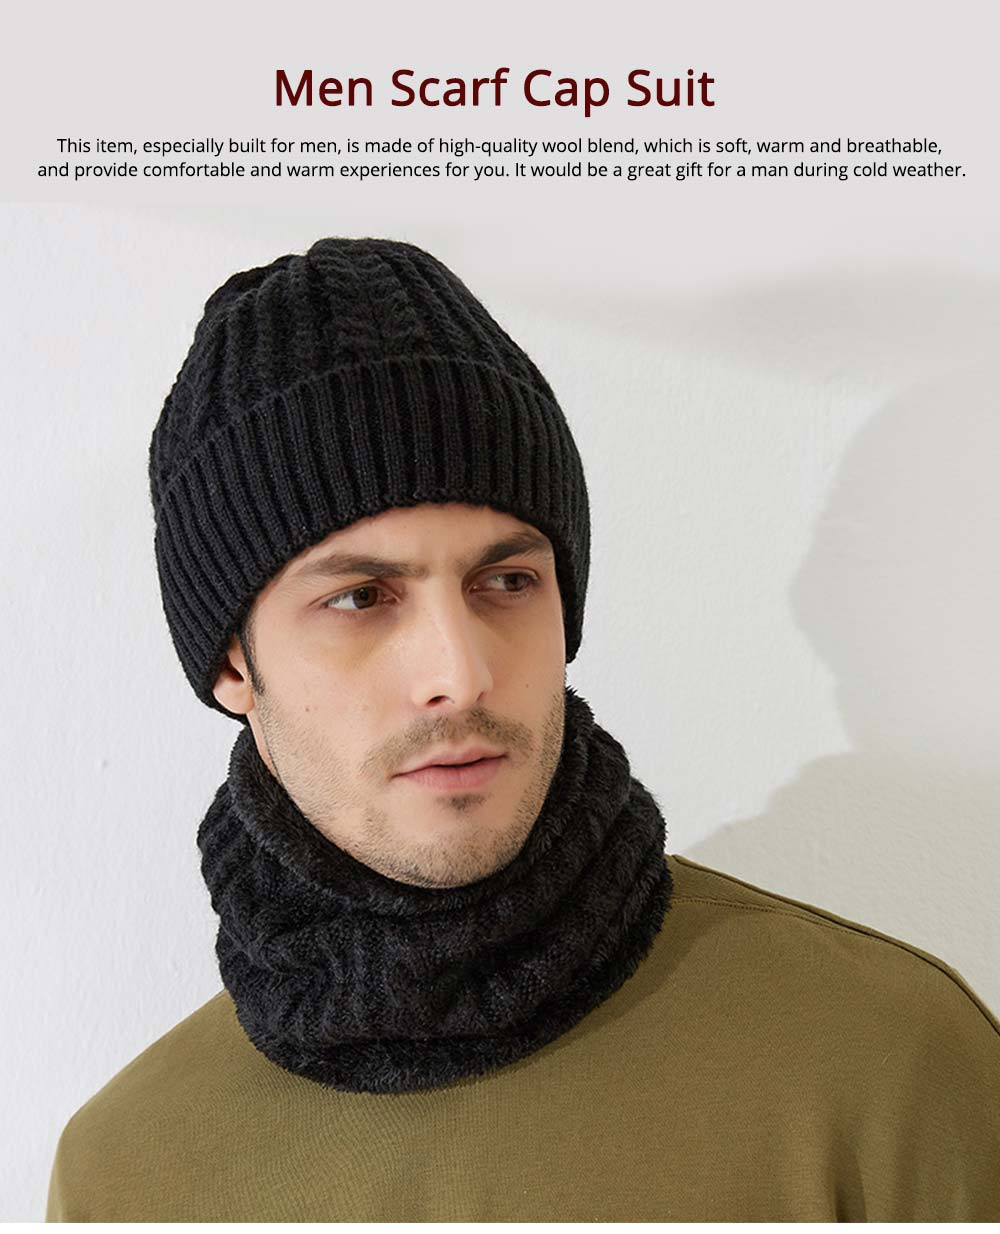 Ultra-soft Plush Knitted Hat Cap Cravat, Autumn Winter Thicken Men Outdoor Scarf Cap Suit with Smooth Plush 0